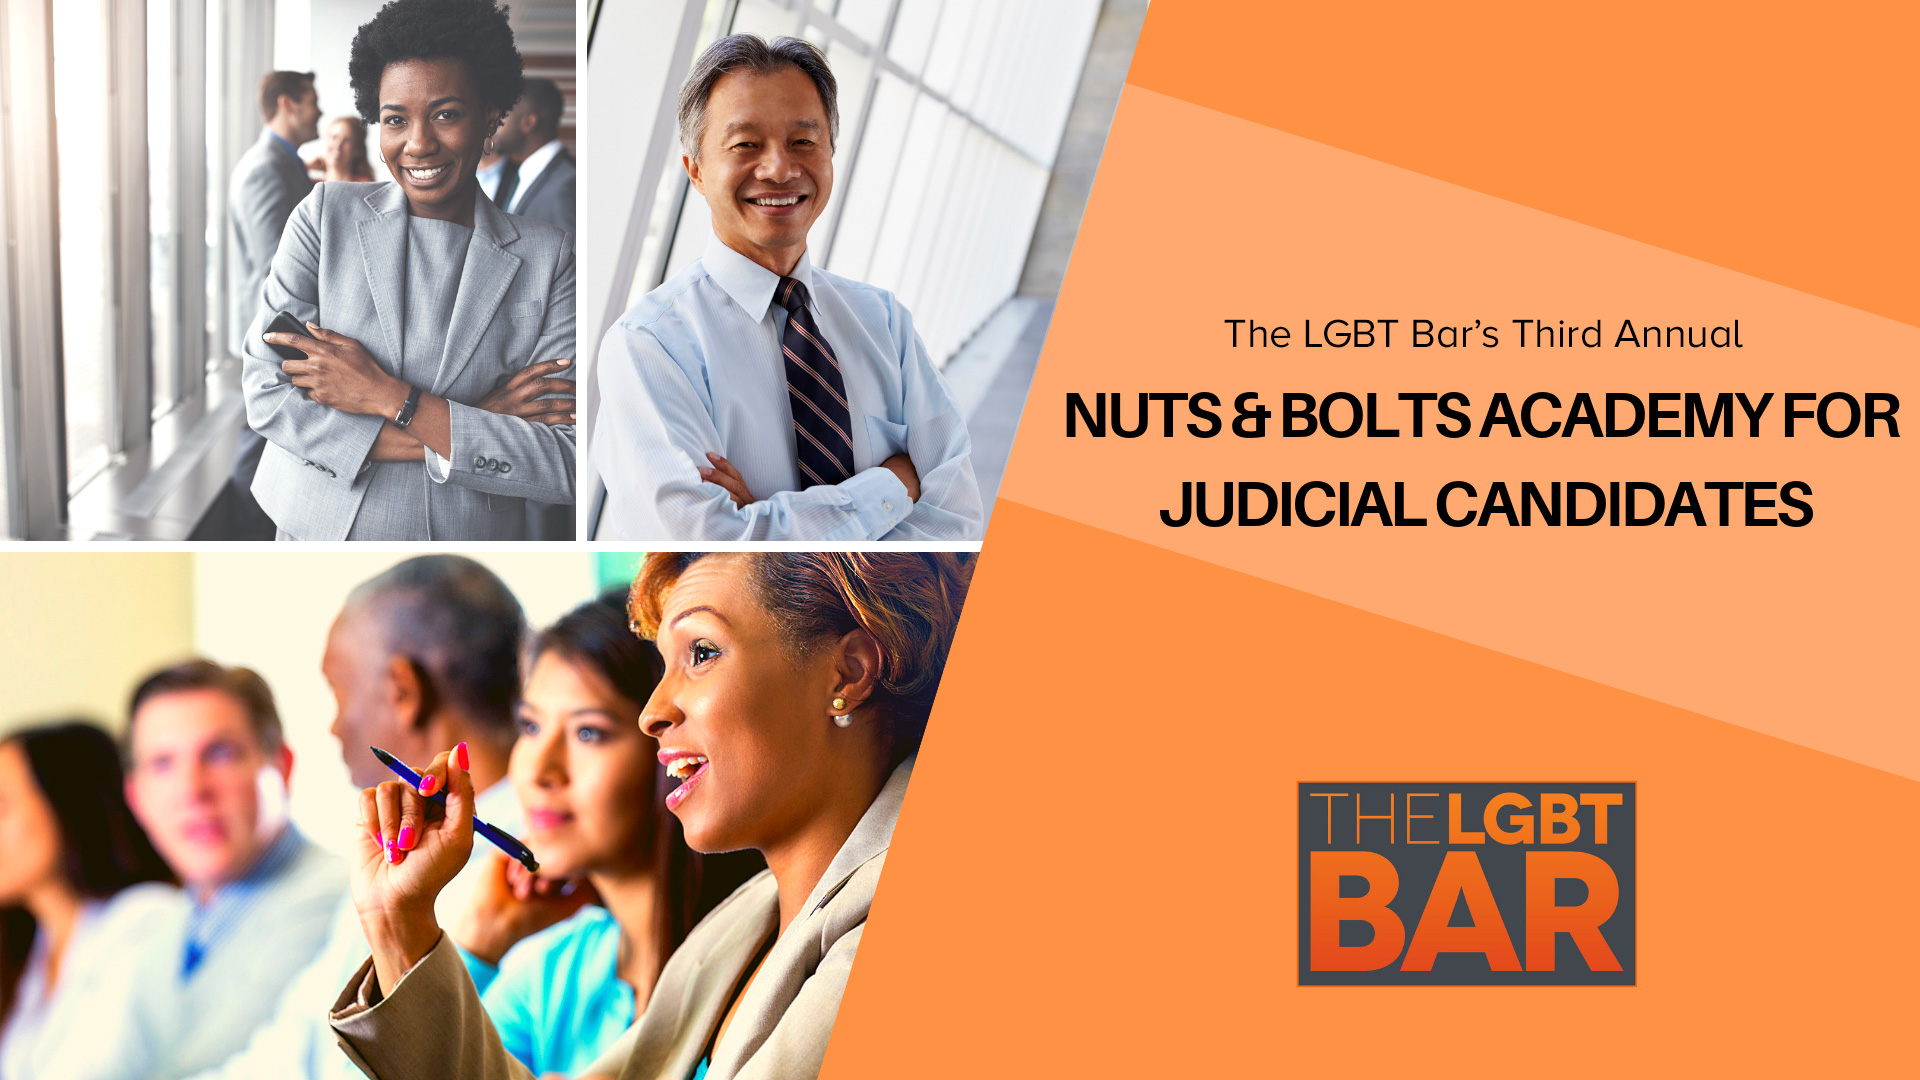 The LGBT Bar's Third Annual Nuts & Bolts Academy For Judicial Candidates